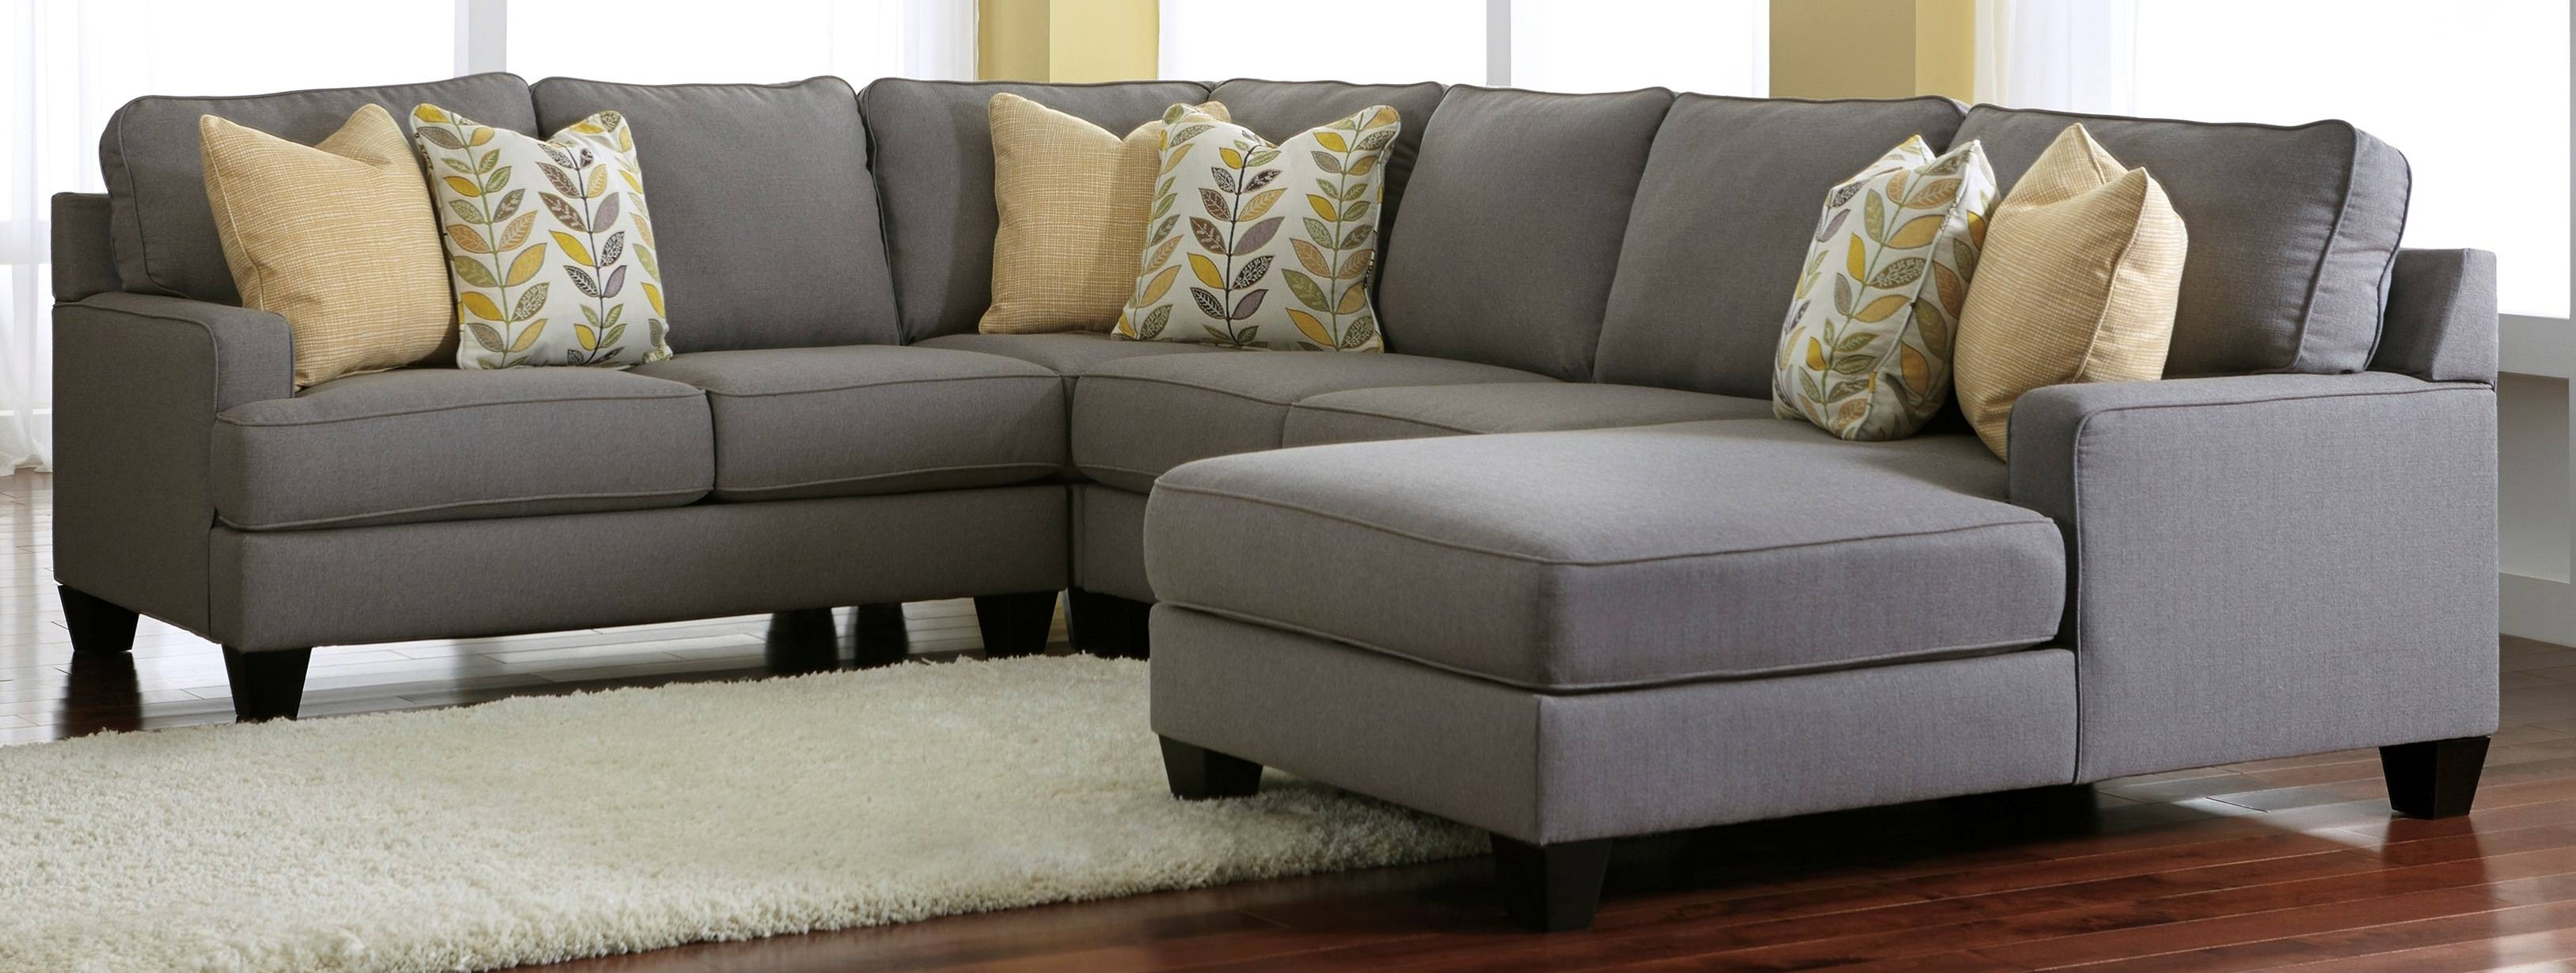 Sofas Center : Game Of Thrones Simone Manuel World Champion pertaining to Champion Sectional Sofa (Image 27 of 30)